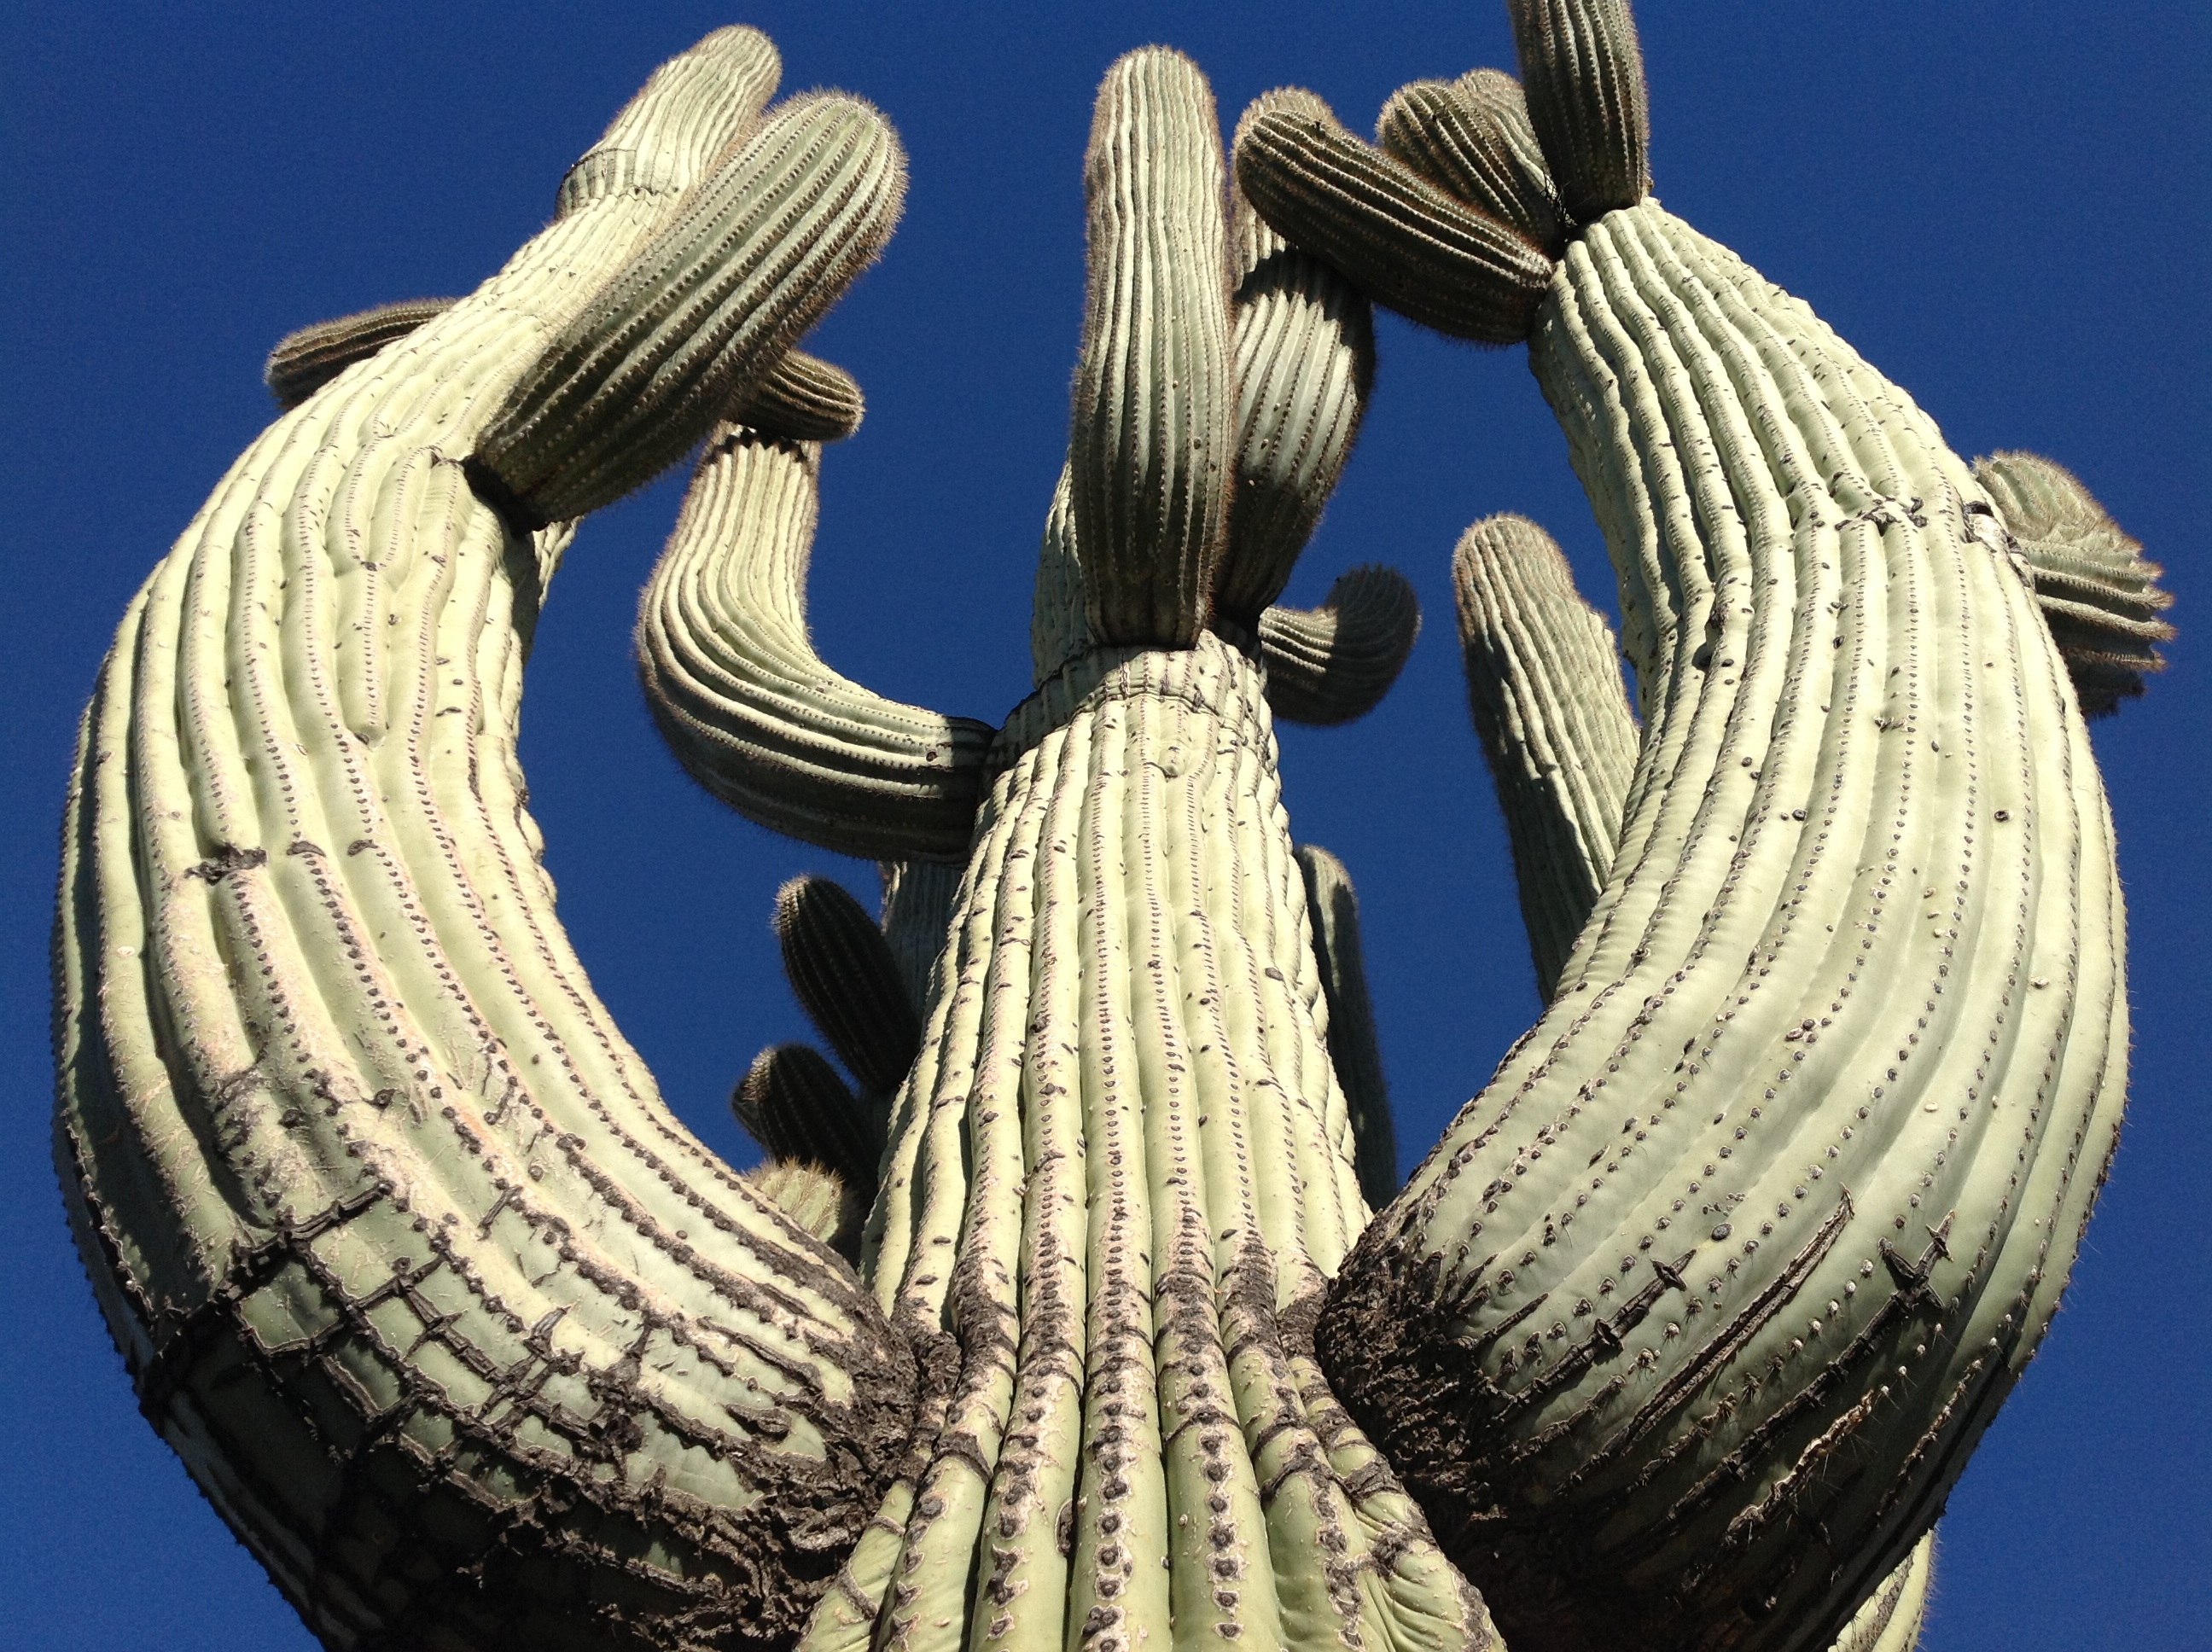 Through the Arms of a Giant - Saguaro National Park